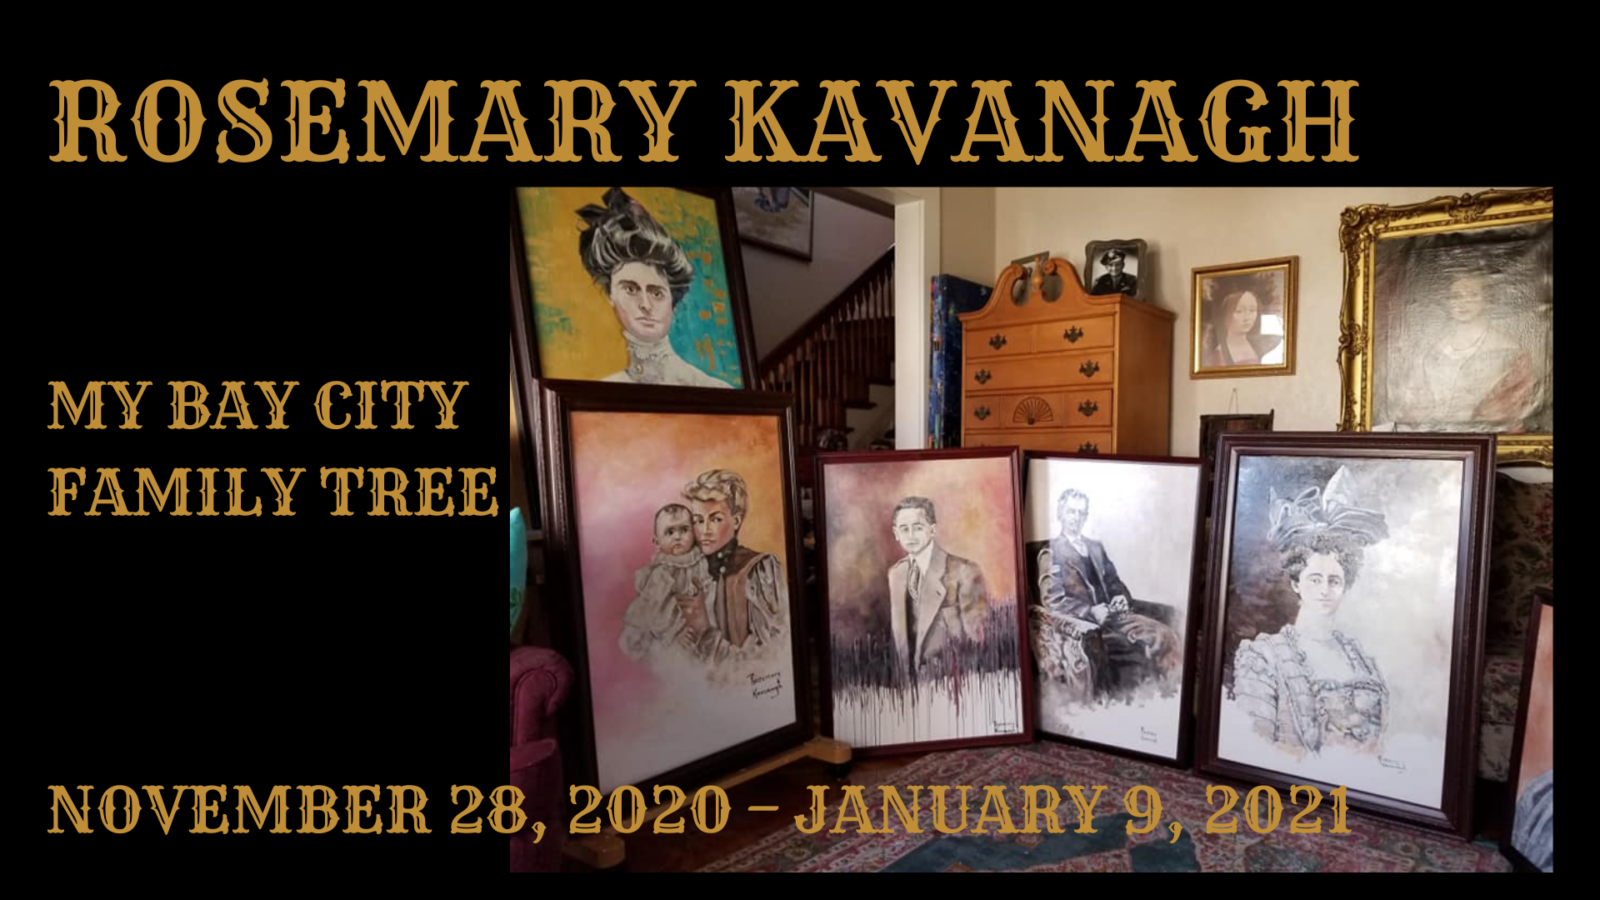 My Bay City Family Tree: Artist Rosemary Kavanagh